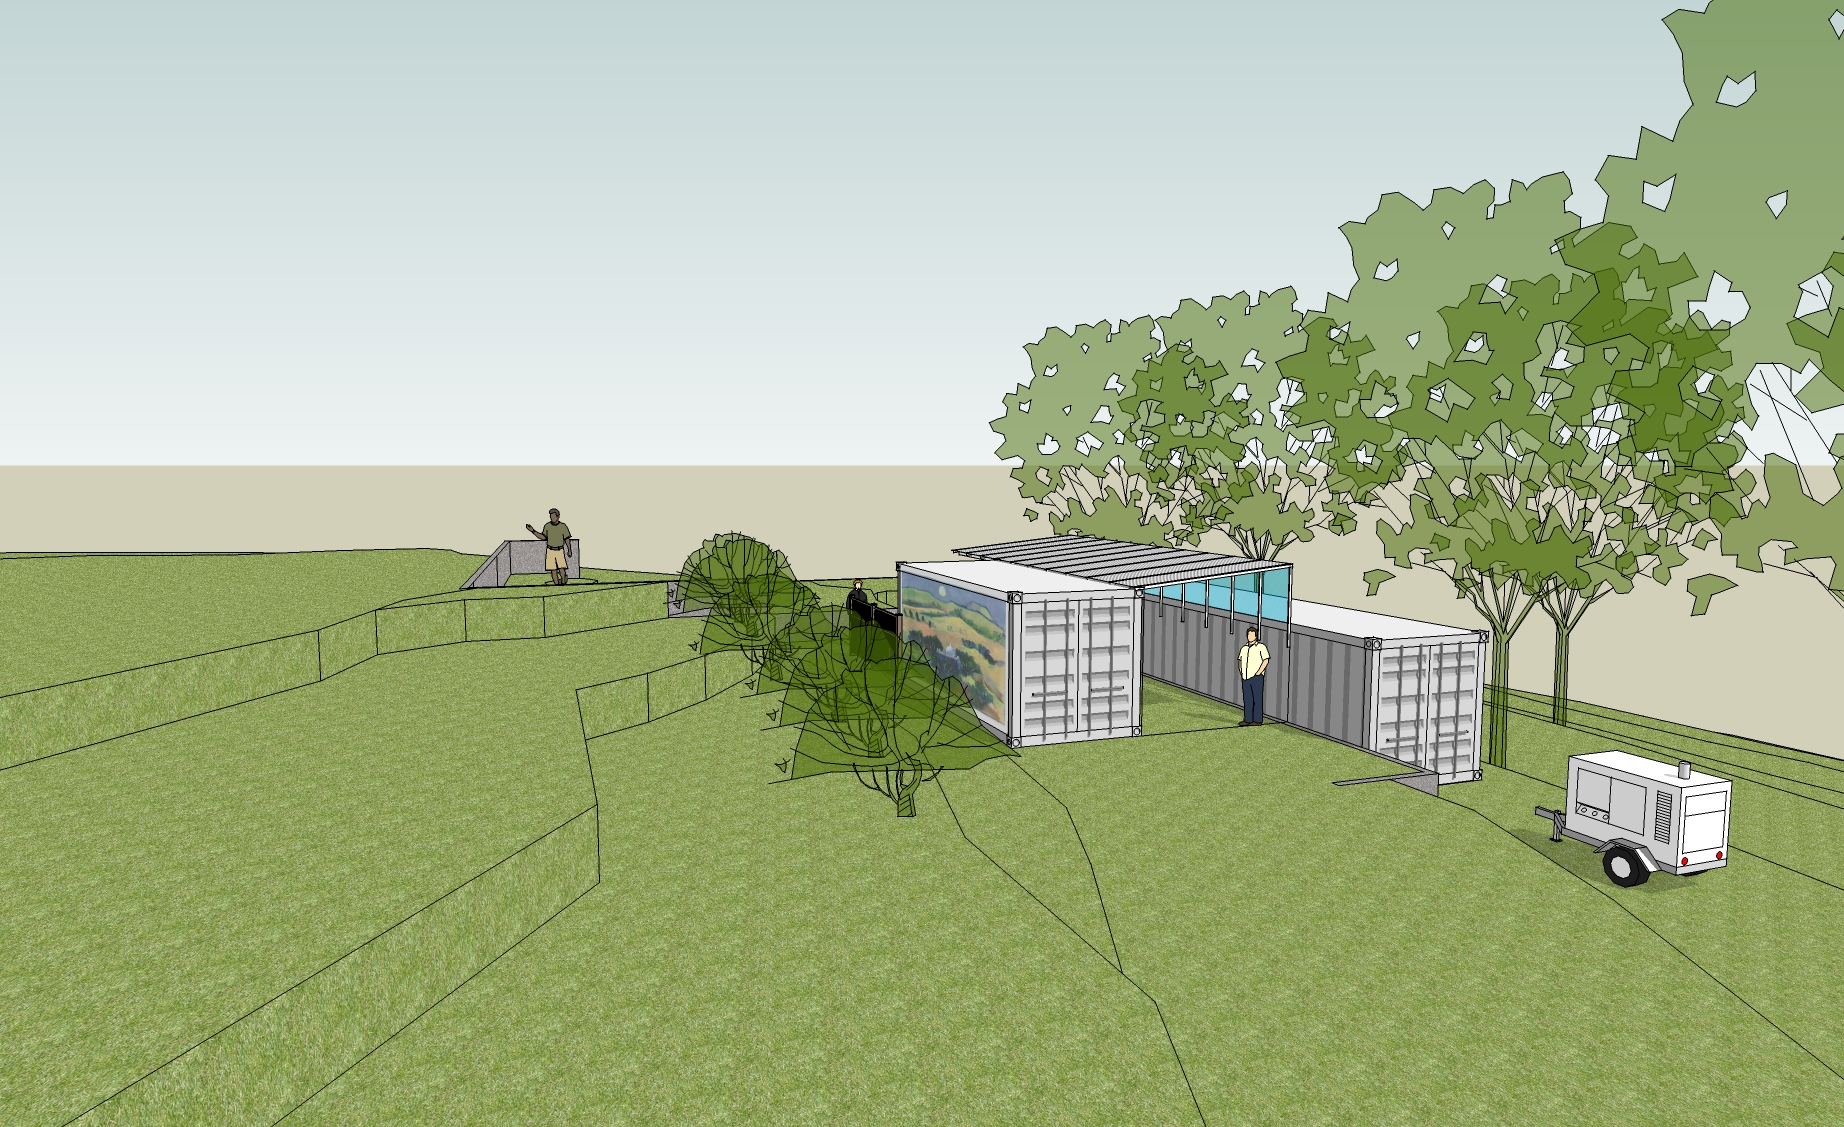 PURCHASING AND CONFIGURING two cargo containers for a garage and workshop was one interim and less costly option that was considered and then rejected. (Byron Pinckert conceptual drawing.)